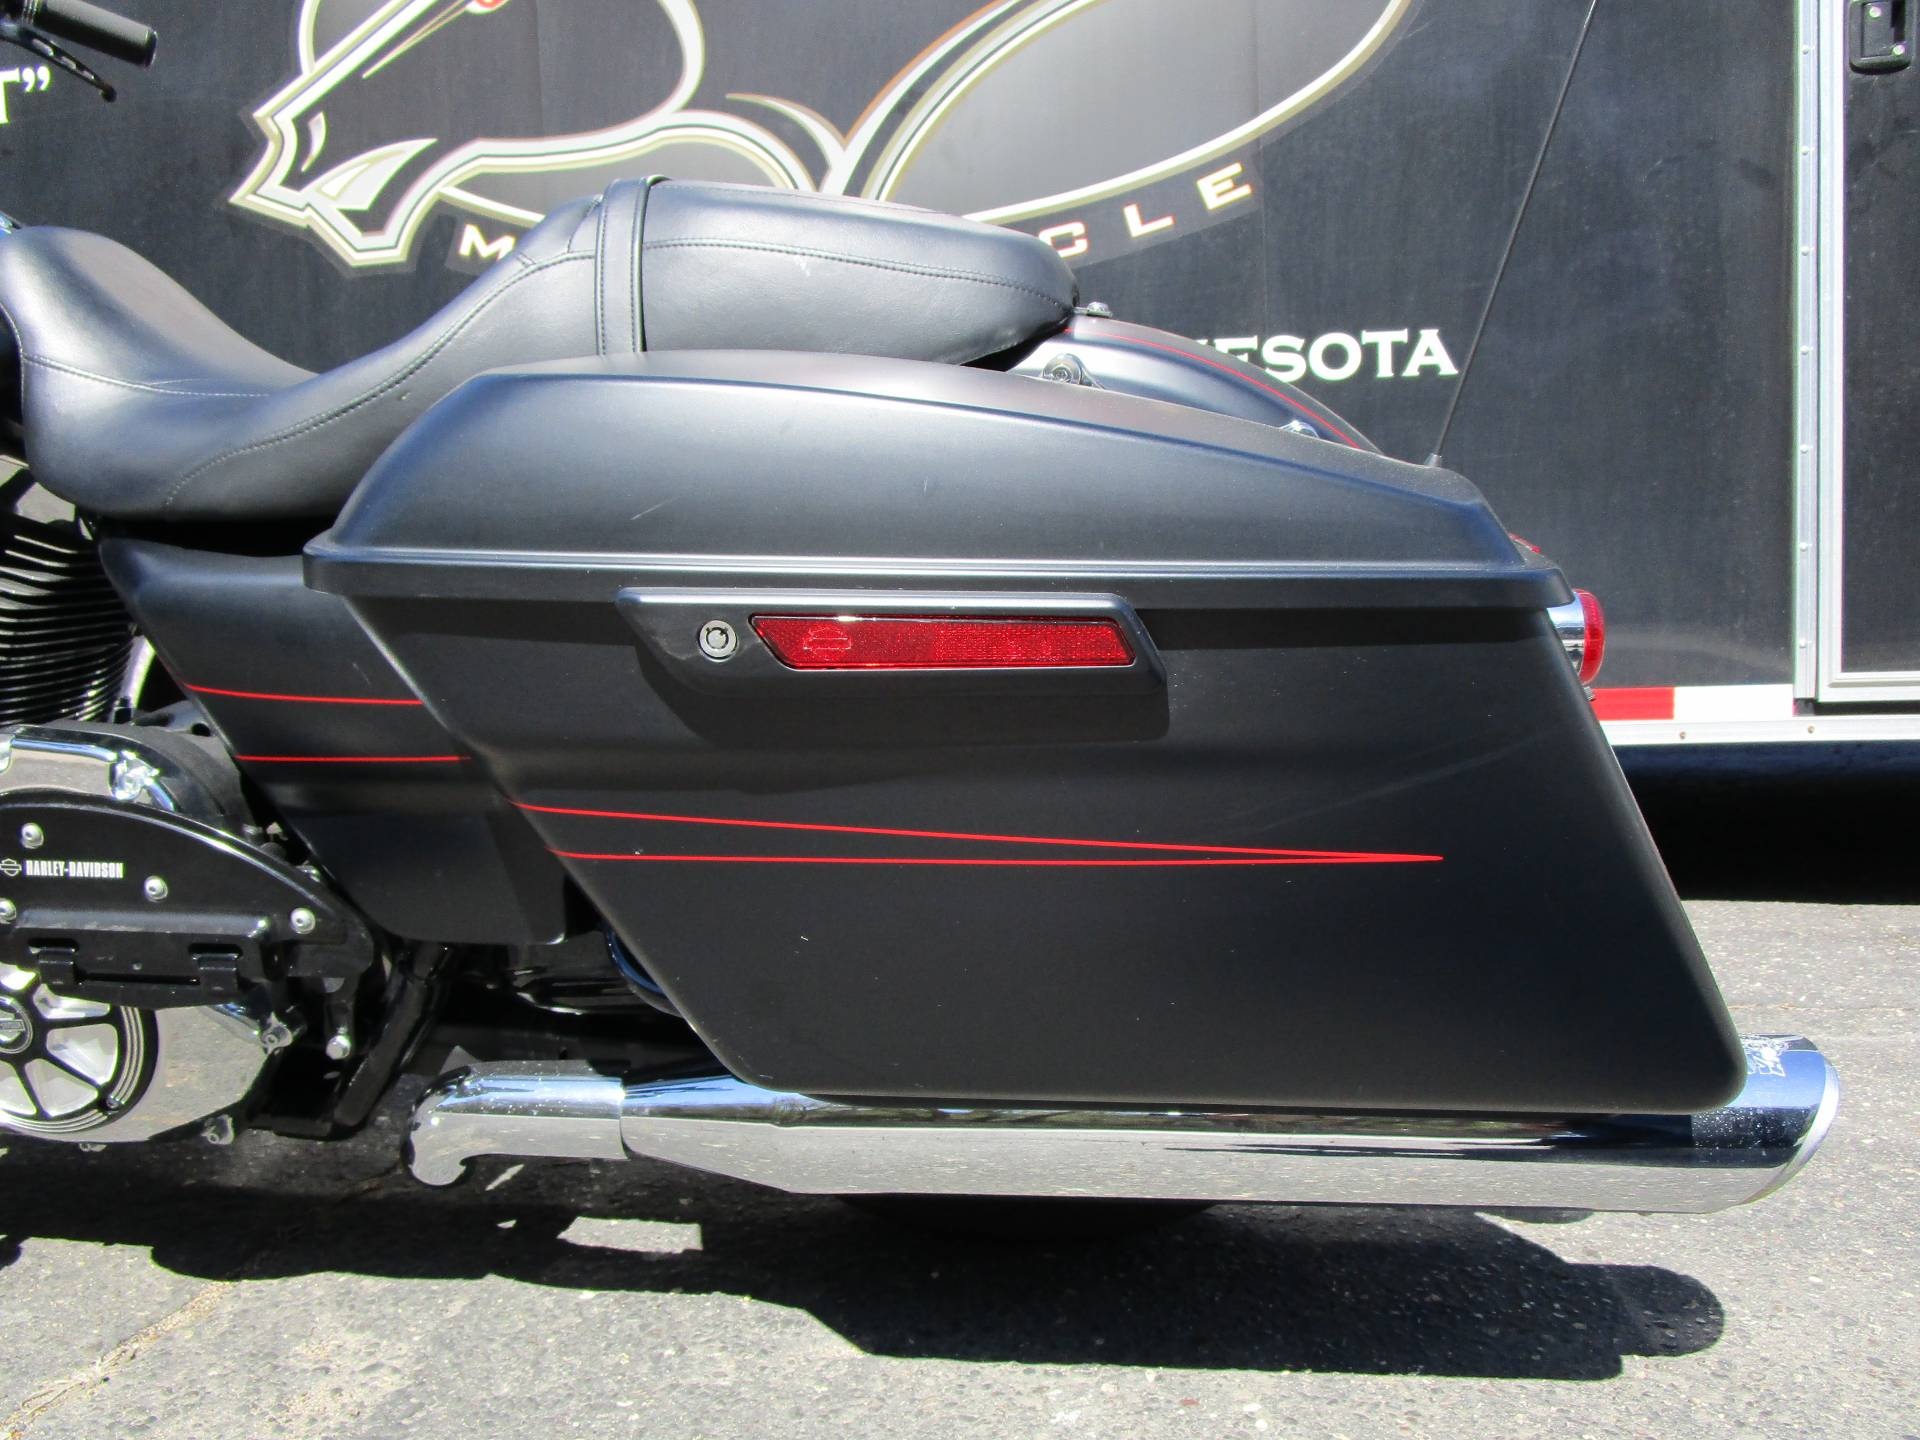 2015 Harley-Davidson FLTRXS ROAD GLIDE SPECIAL in South Saint Paul, Minnesota - Photo 17